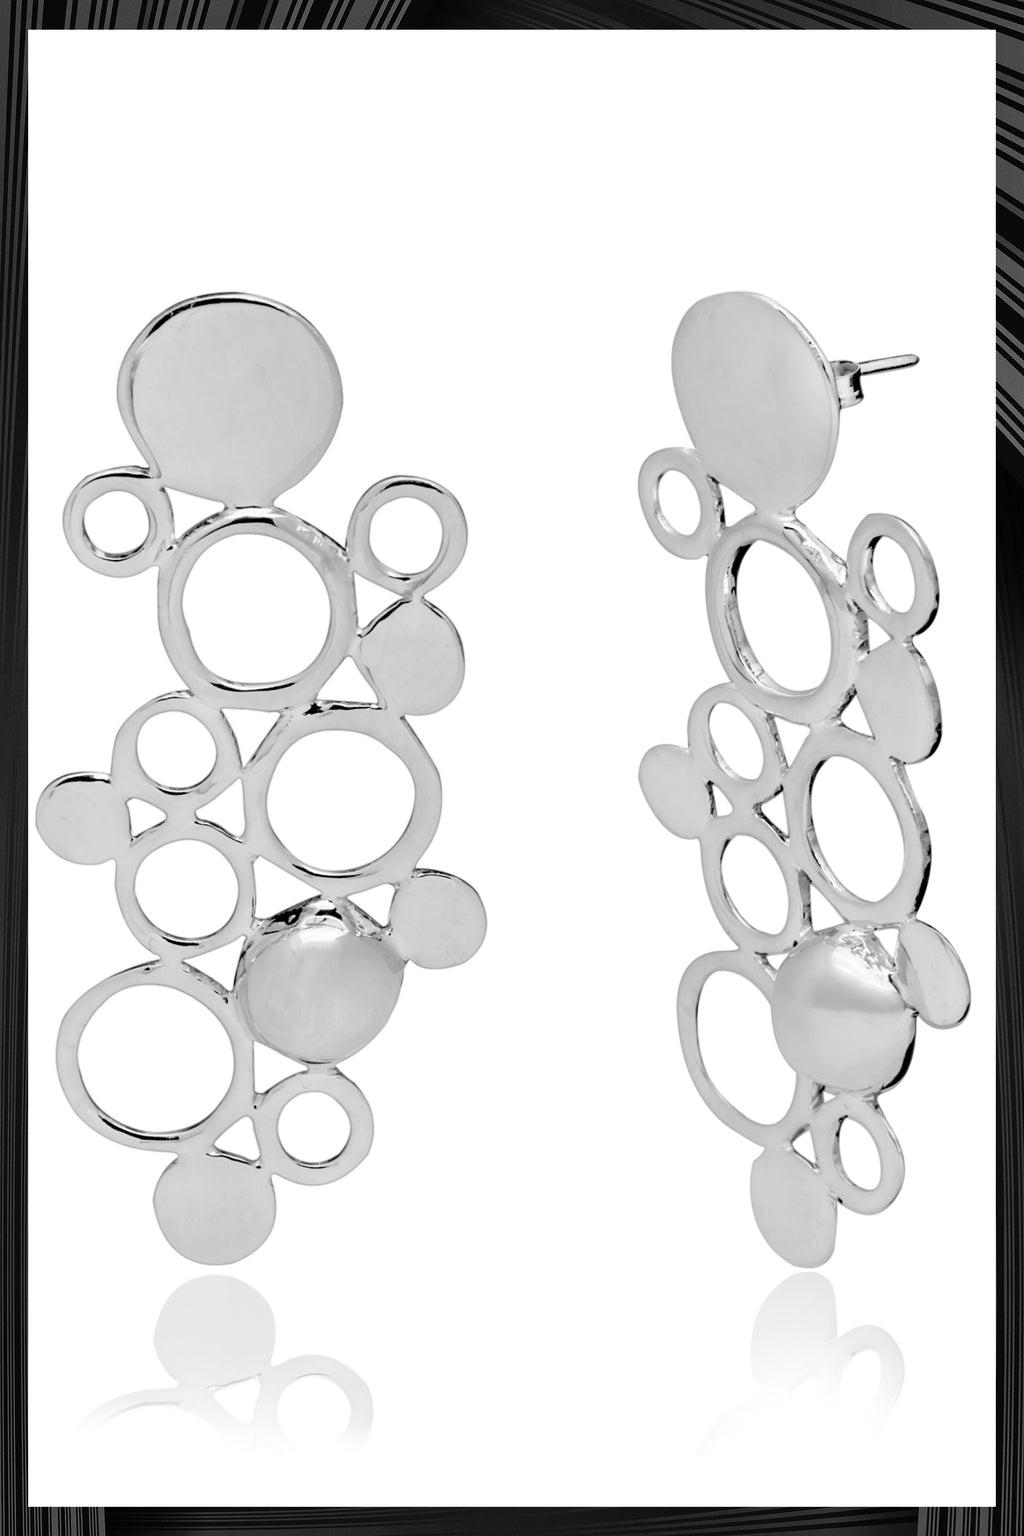 Bubbles Earrings | Free Delivery - 2-3 Weeks Shipping